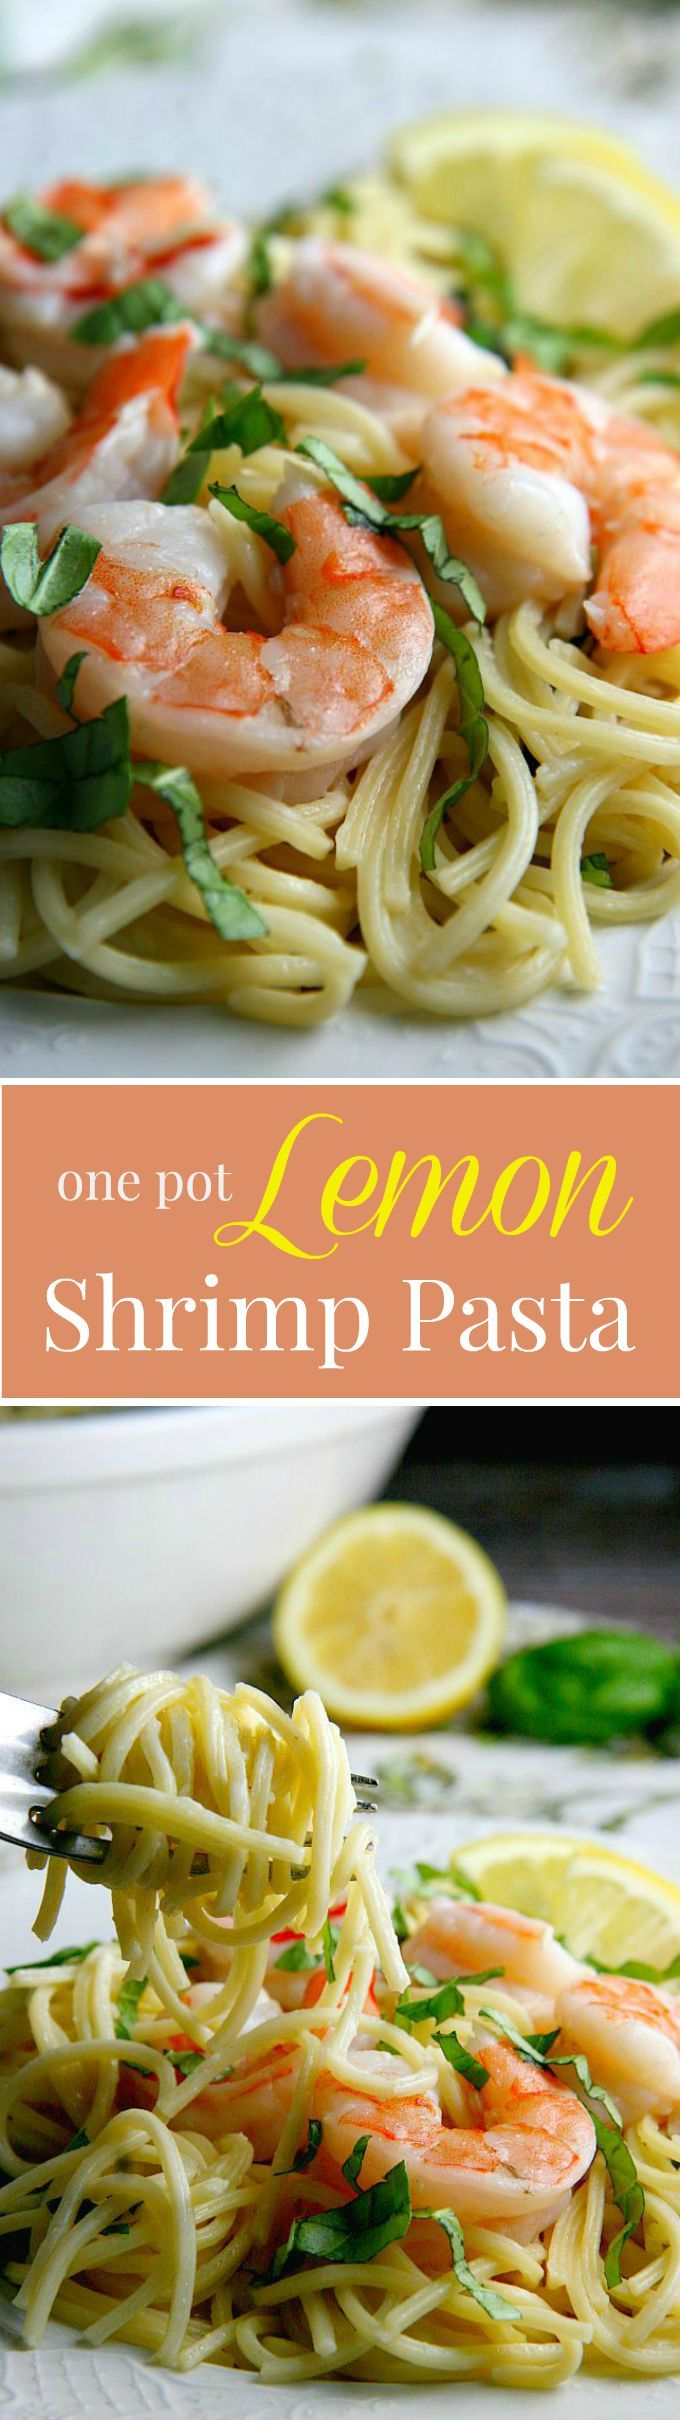 Lemon Shrimp Pasta with a delicious creamy sauce...easy 15 minute one pot meal! Perfect dinner recipe for busy families.